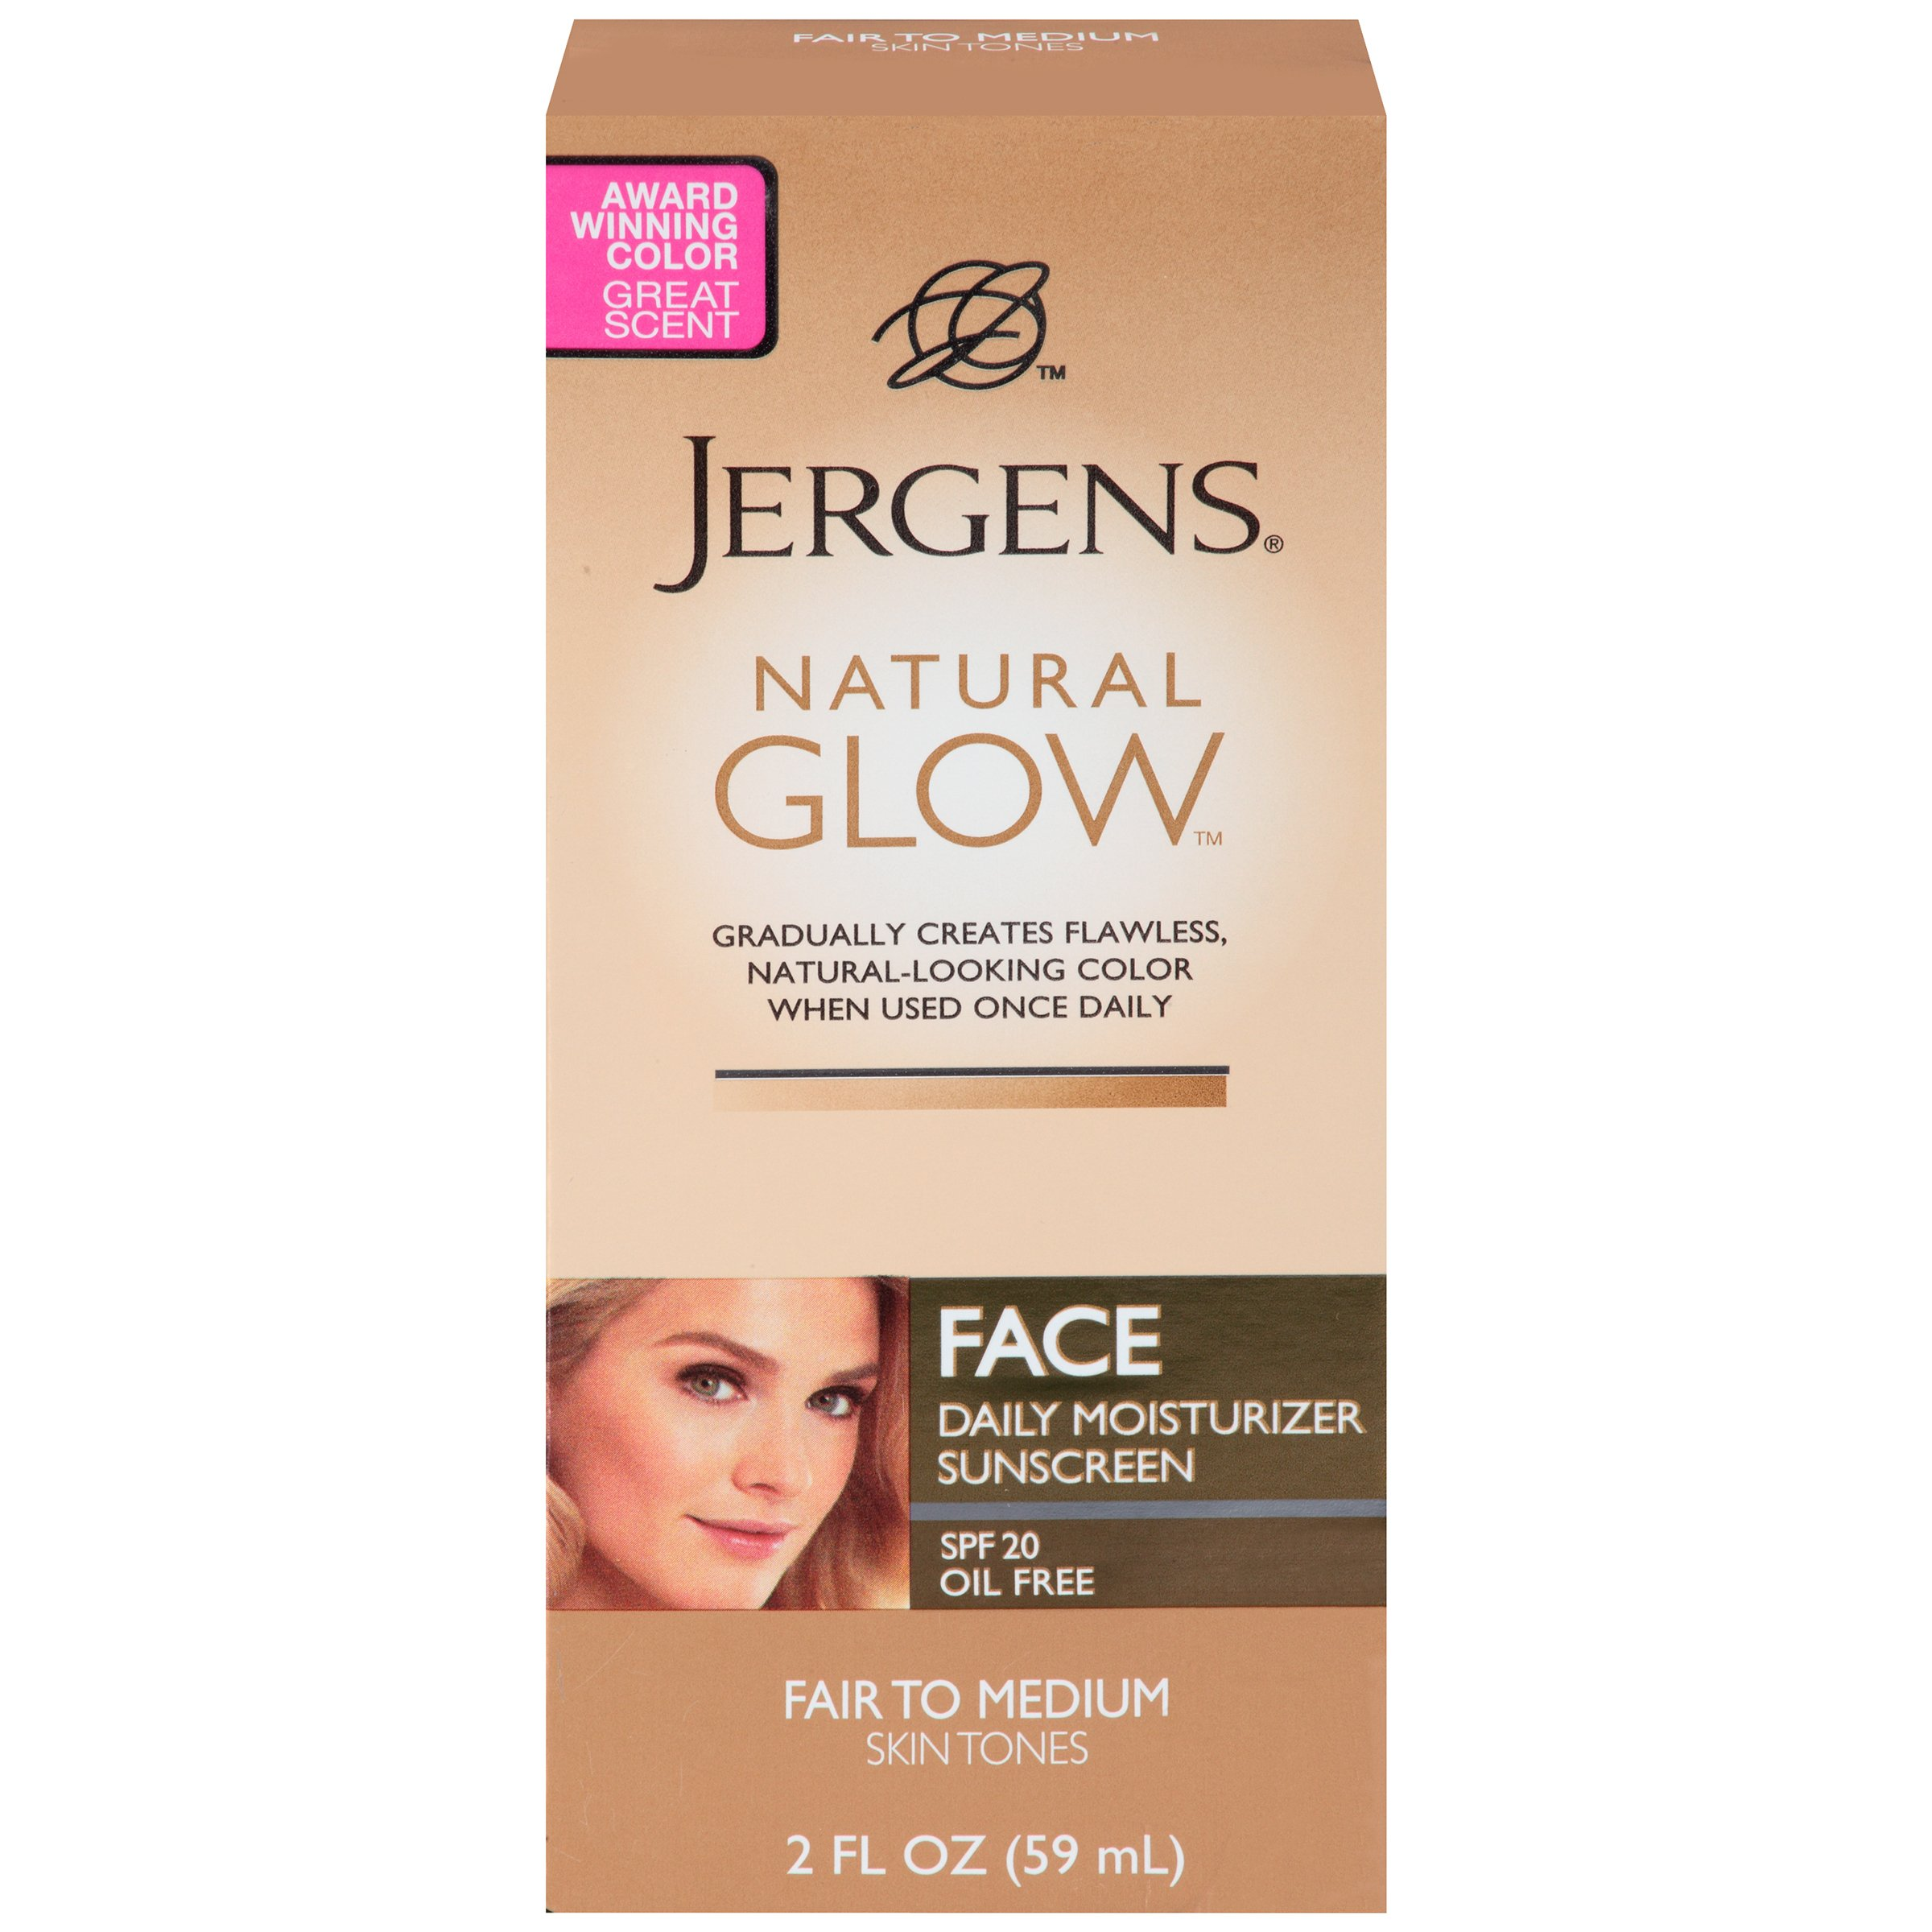 Jergens Natural Glow Face Daily Moisturizer Sunscreen SPF 20, Fair to Medium Skin Tones, 2 Ounce